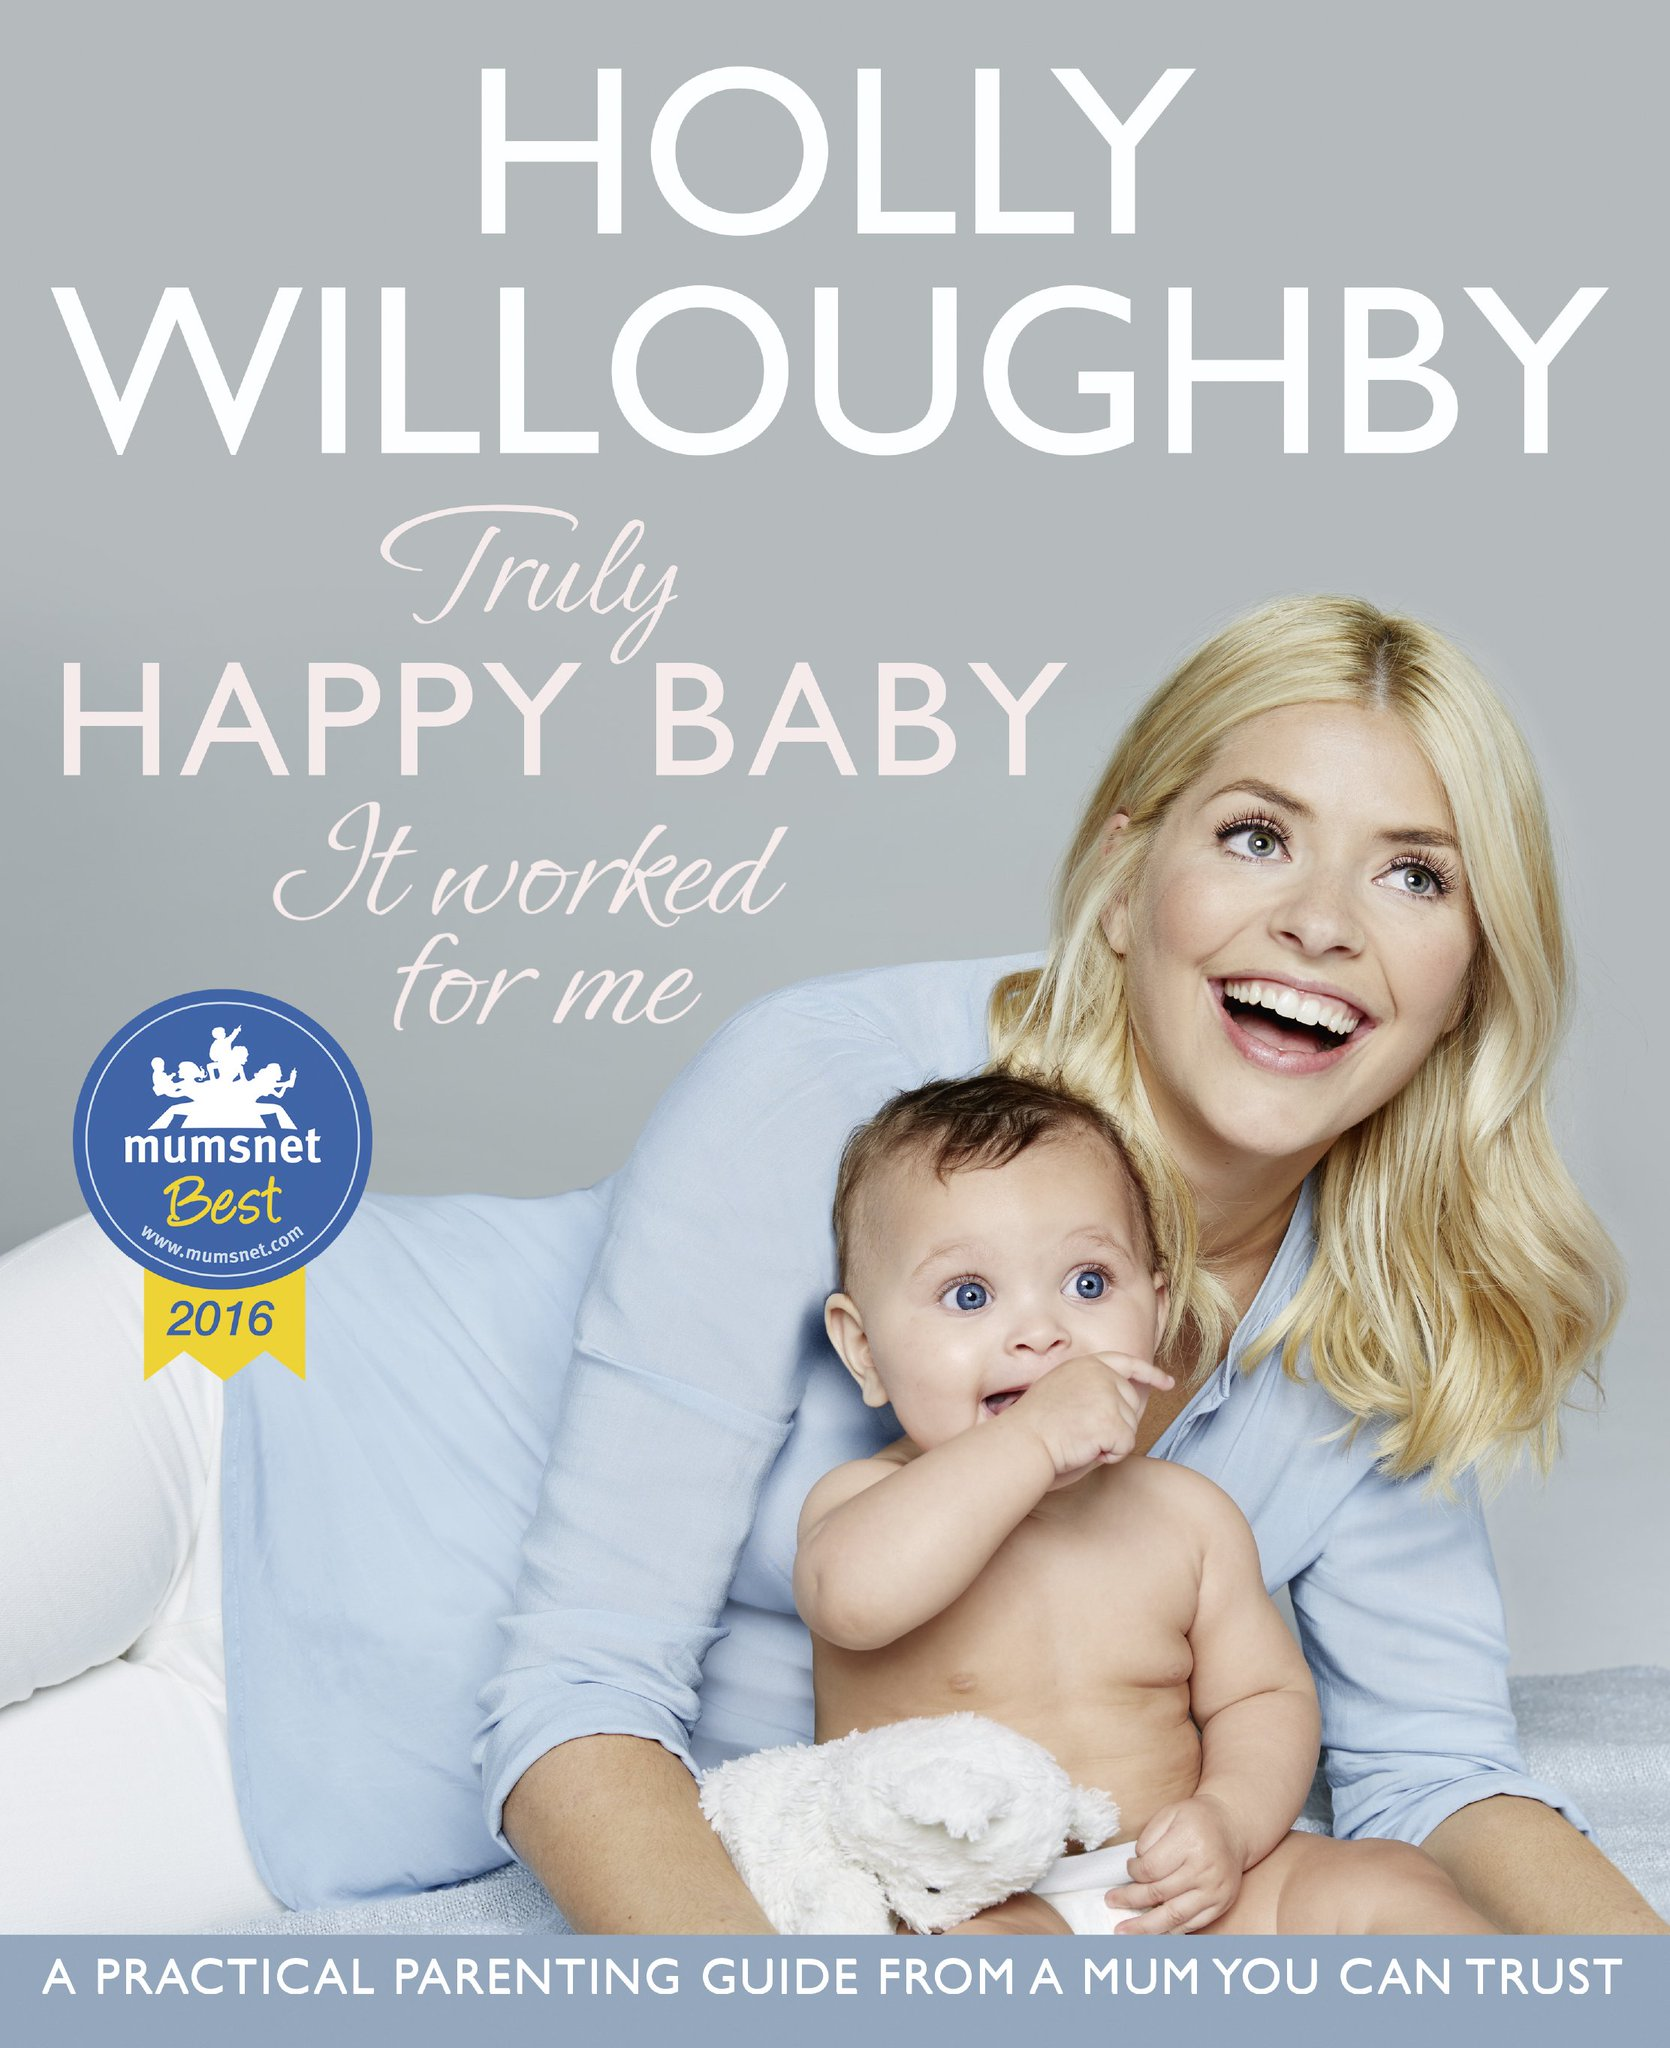 It's here!! The cover for my book Truly Happy Baby... featuring my gorgeous niece Darcy! https://t.co/4DWLIEHGkQ ❤️ https://t.co/R8lFfWvNu9